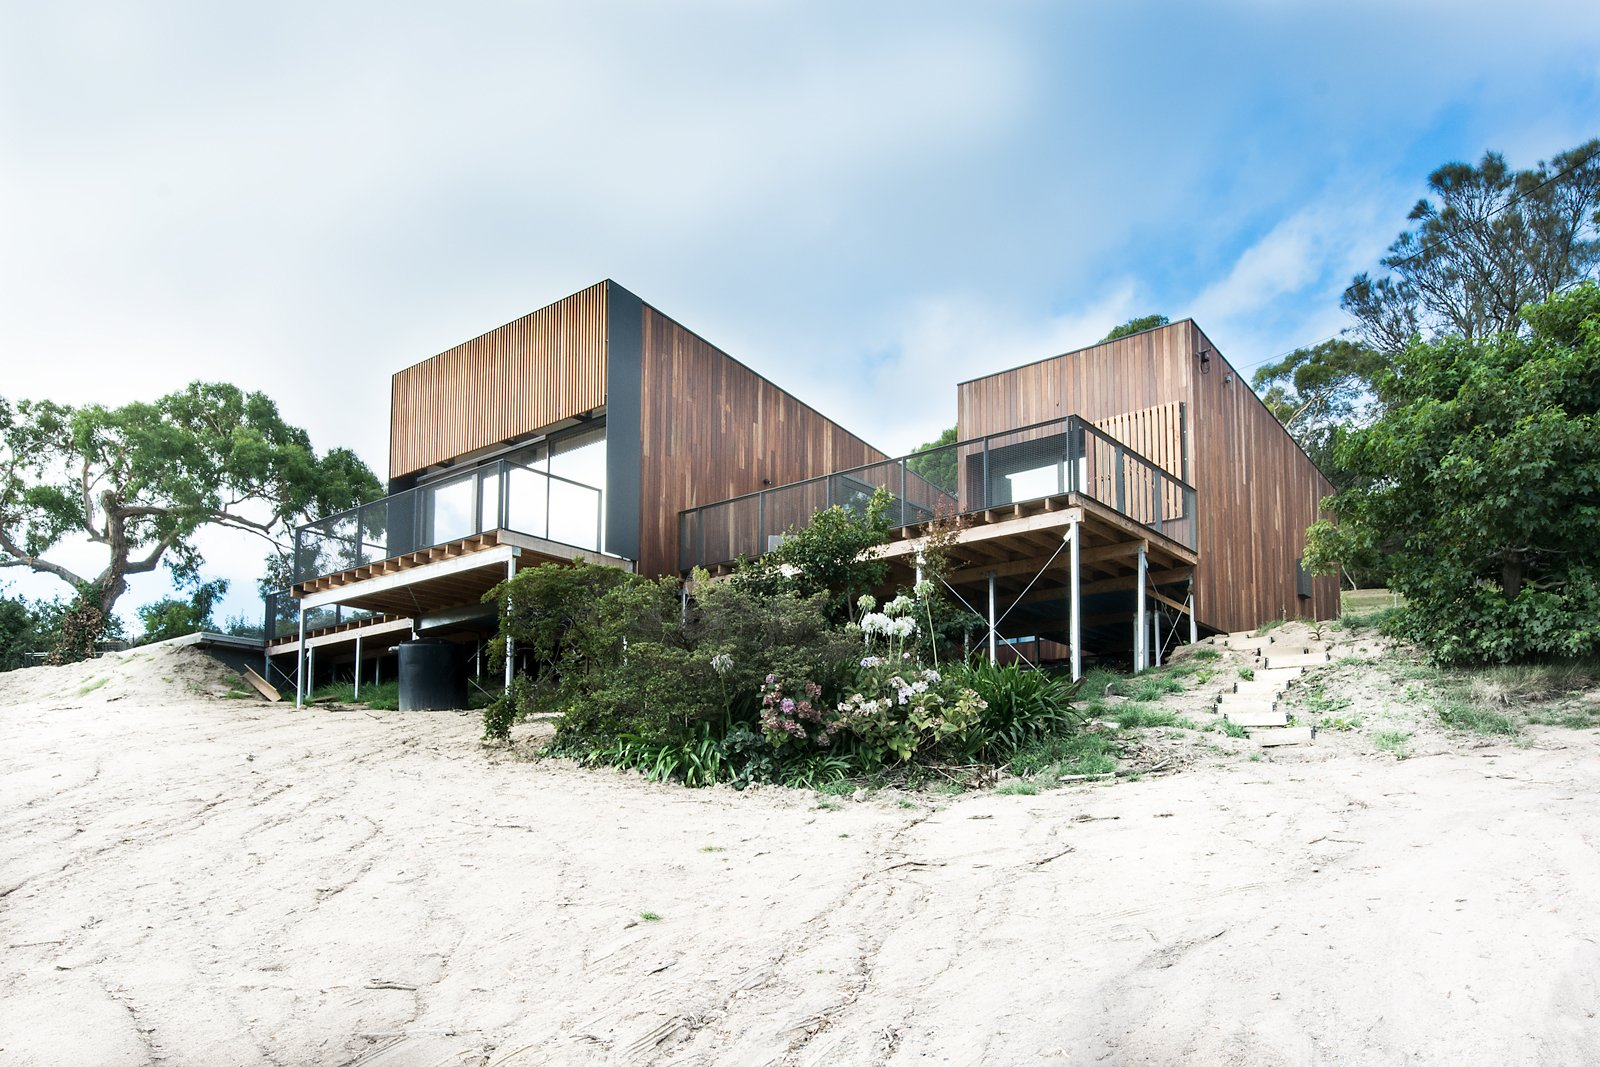 "The home, clad in natural Australian timber, enjoys a sense of lightness thanks to slender columns that let it float over the dunes. The driveway and entry, at the rear of the building, have an understated design to build to the interior's magnificent ocean views. Firm director Phil Snowdon explains, ""By creating an architectural form that draws your eye and leads you up the steep driveway, we could engage new visitors in a welcoming process that first reveals the object and then slowly reveals the main event, being the view."" Tagged: Exterior.  Modern Beach Homes in Australia by Matthew Keeshin from Martha"